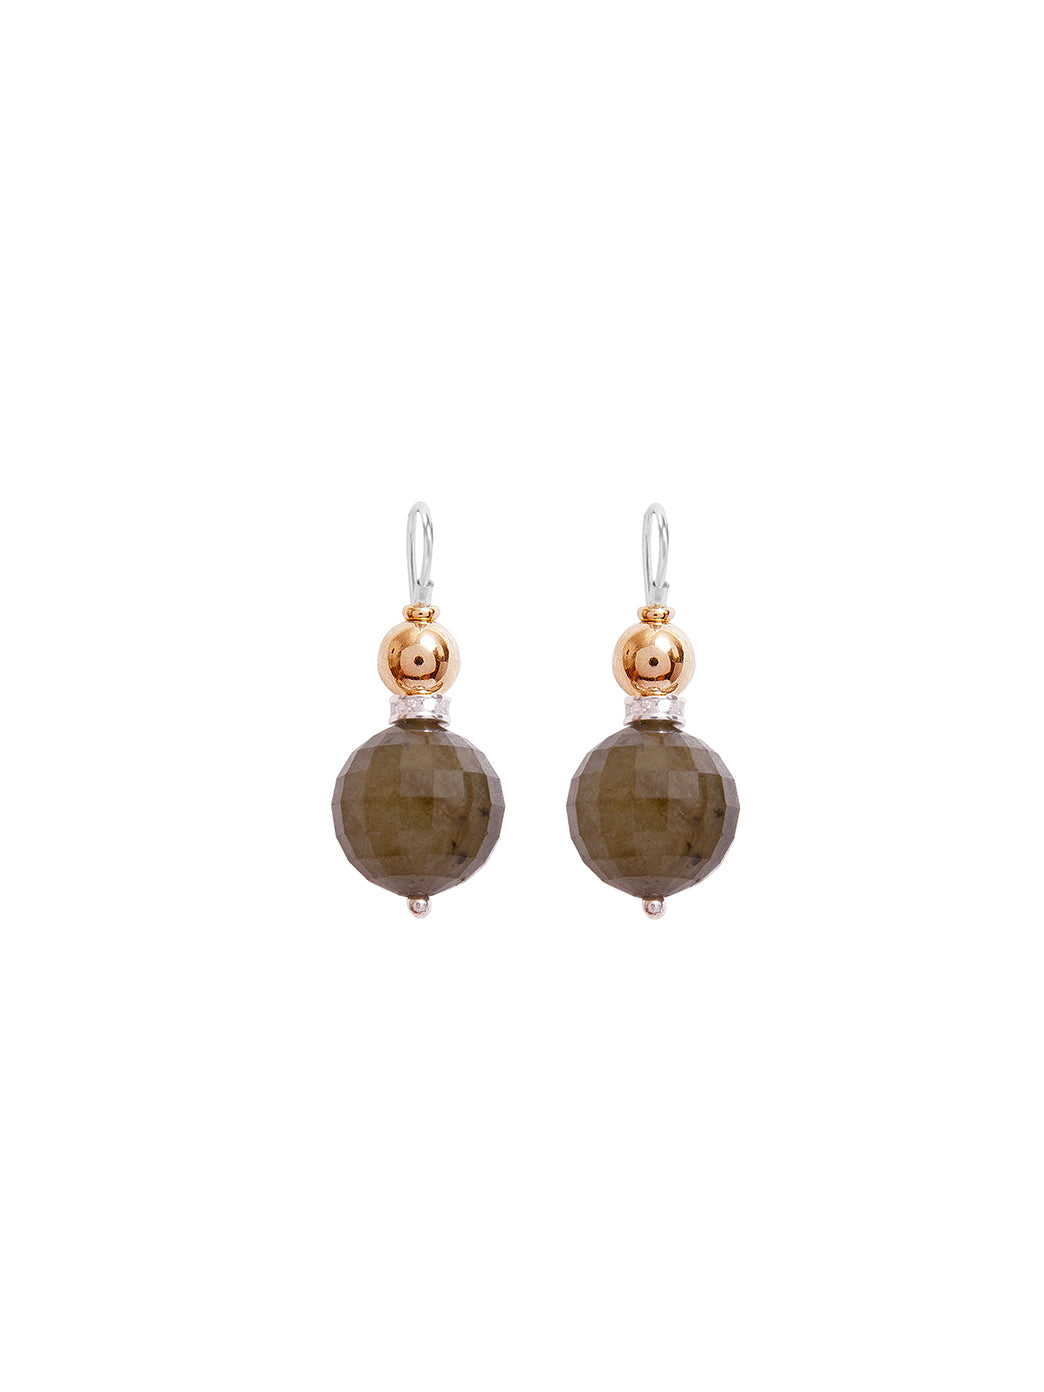 Fiorina Jewellery Double Ball Earrings Labradorite